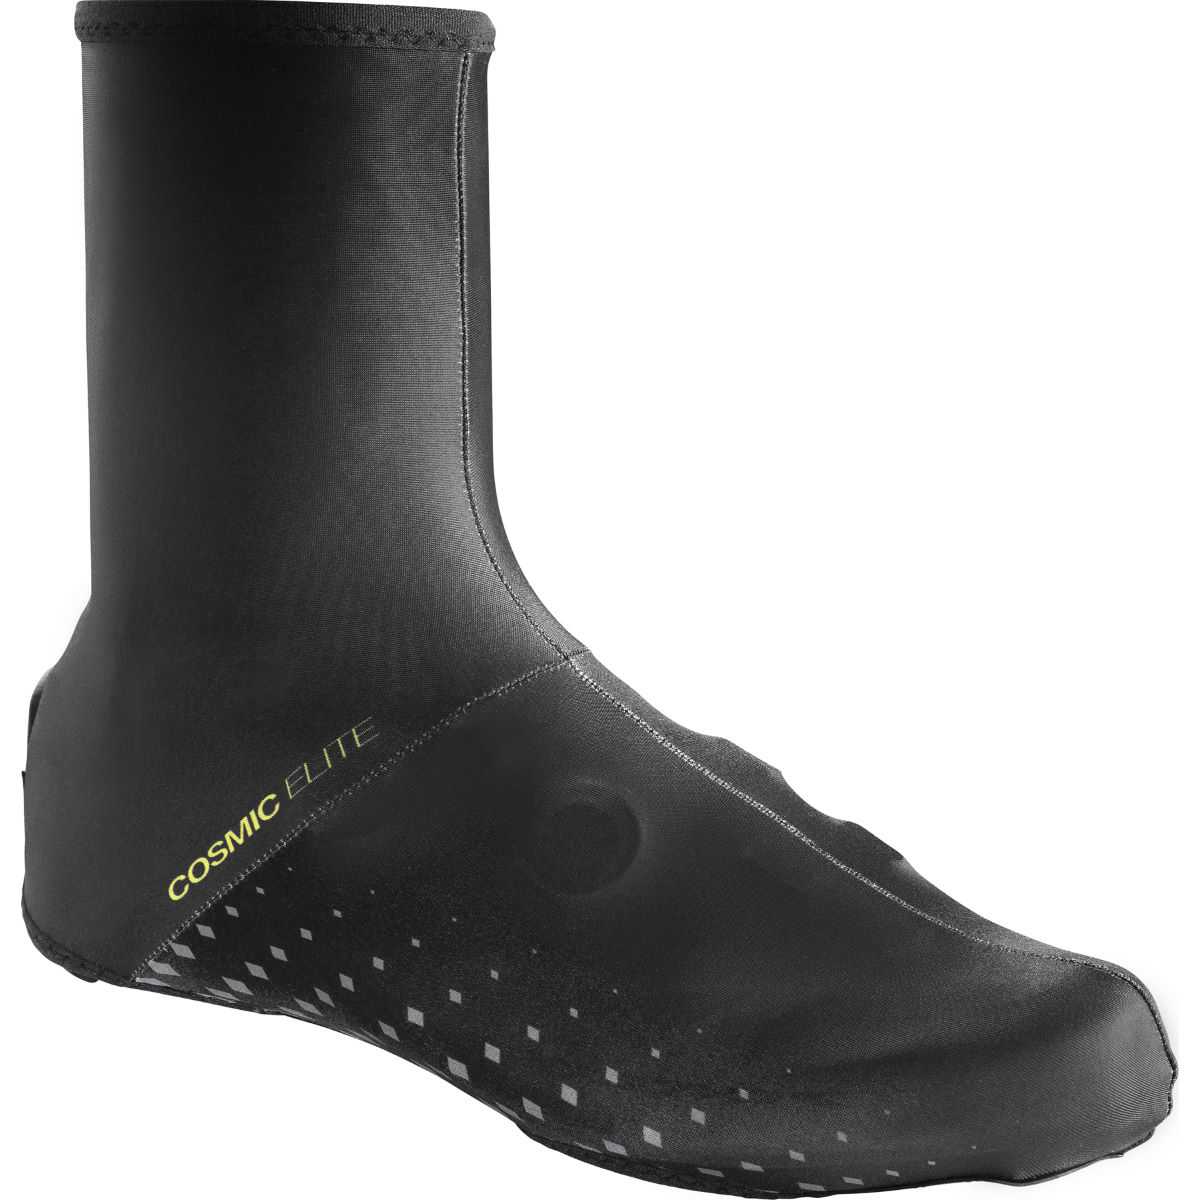 Cubrezapatillas Mavic Cosmic Elite - Cubrezapatillas